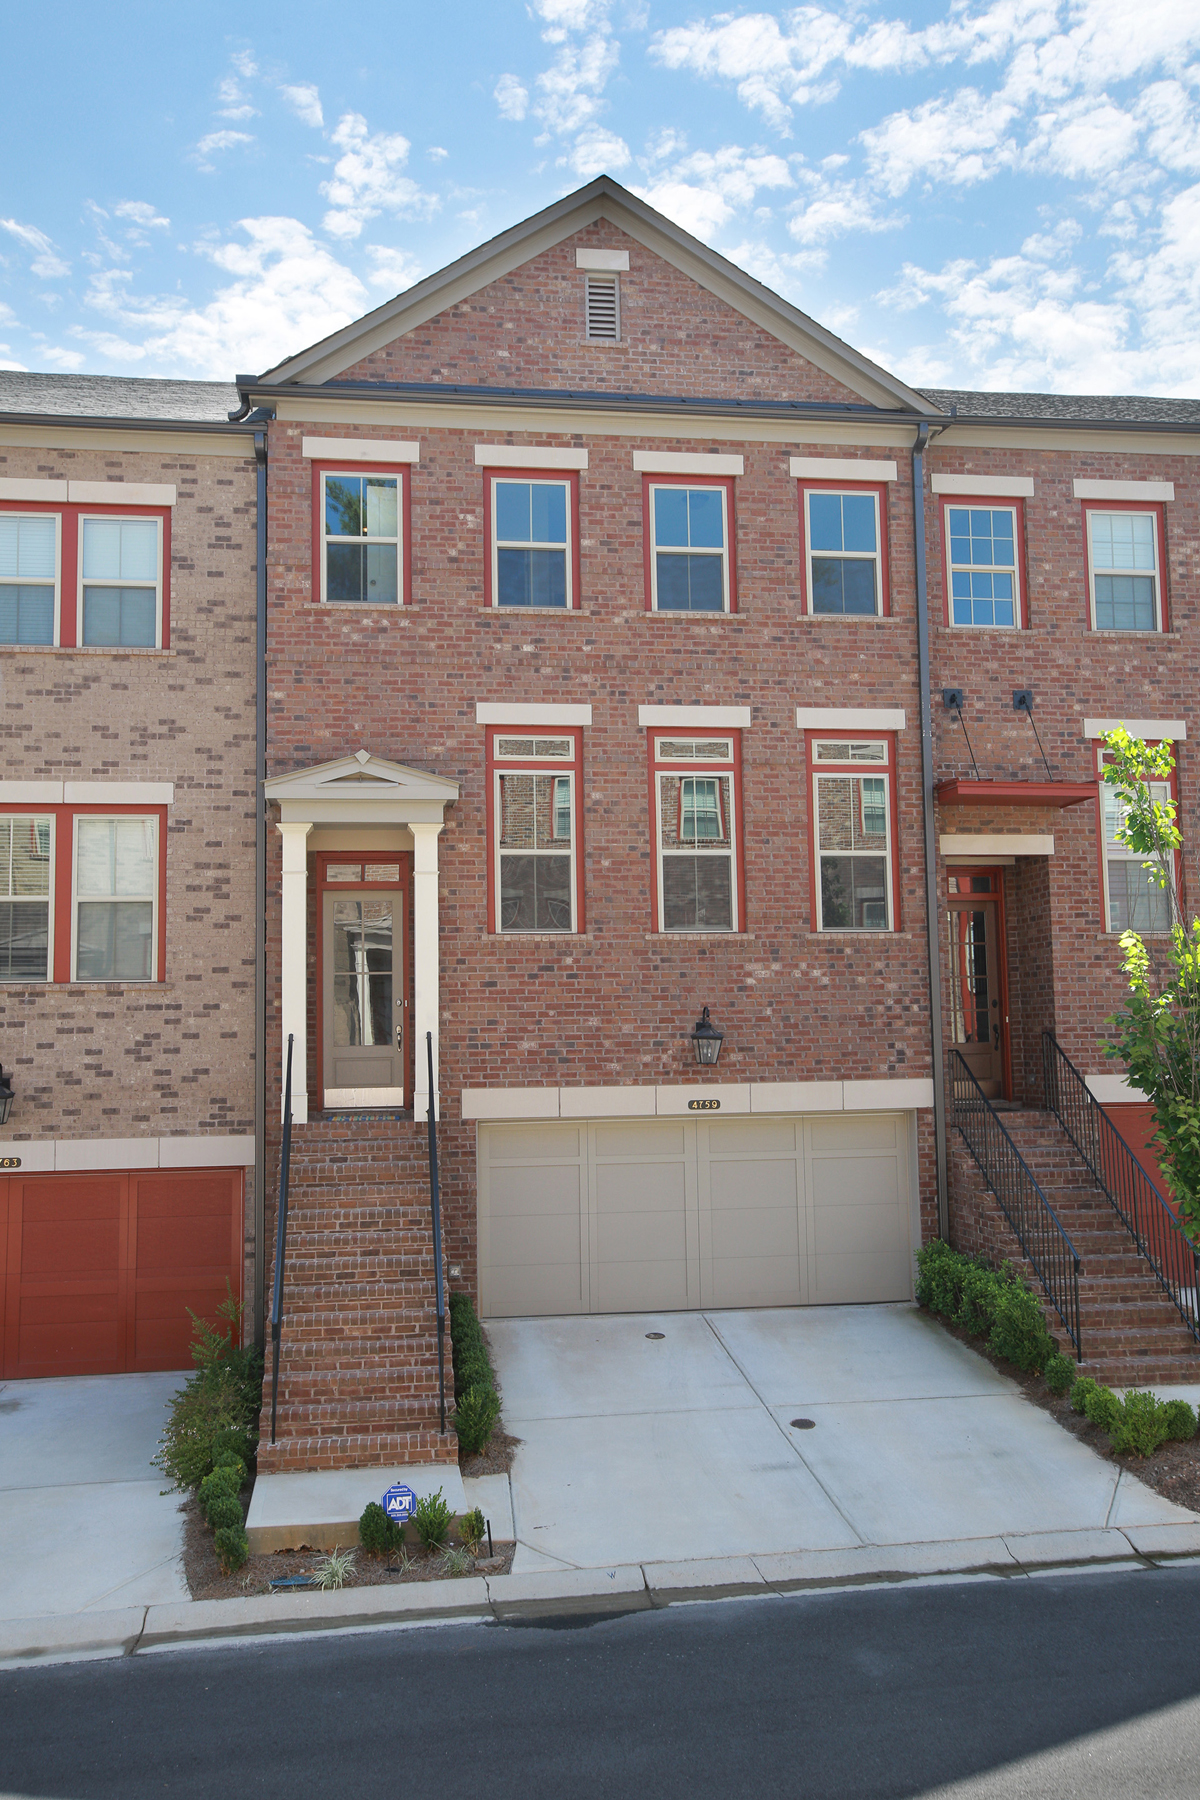 Moradia em banda para Arrendamento às Gorgeous Executive Townhome In Sought After DunwoodyPerimeter Location 4759 Laurel Walk Dunwoody, Geórgia 30338 Estados Unidos